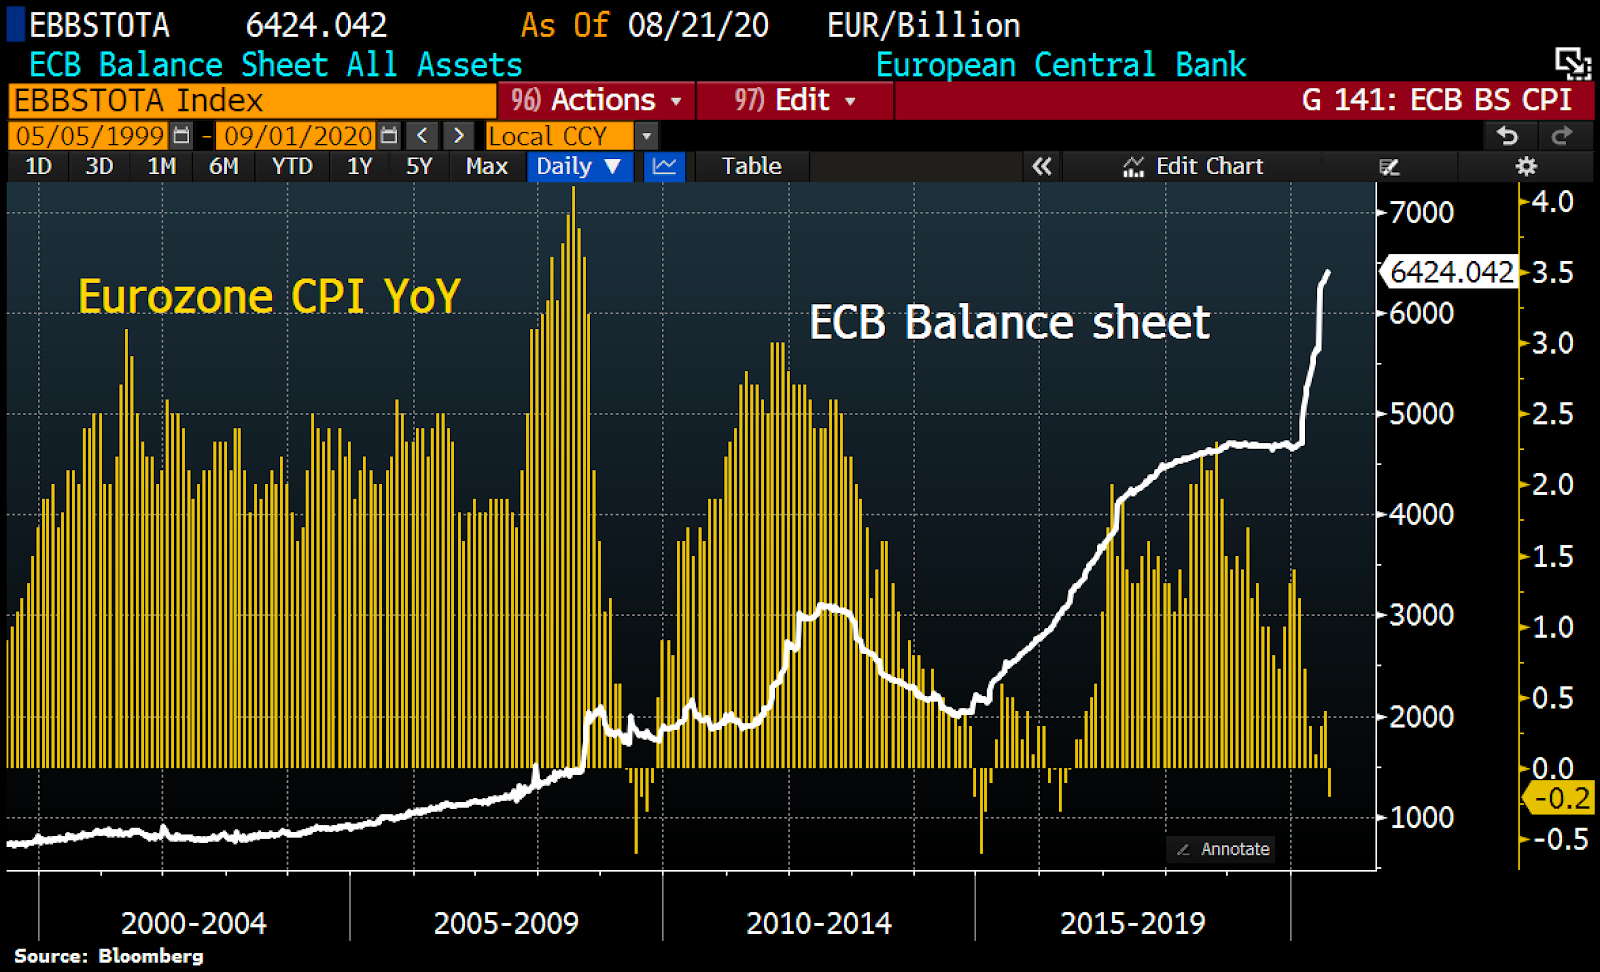 Eurozone consumer price index (CPI) inflation and ECB balance sheet chart